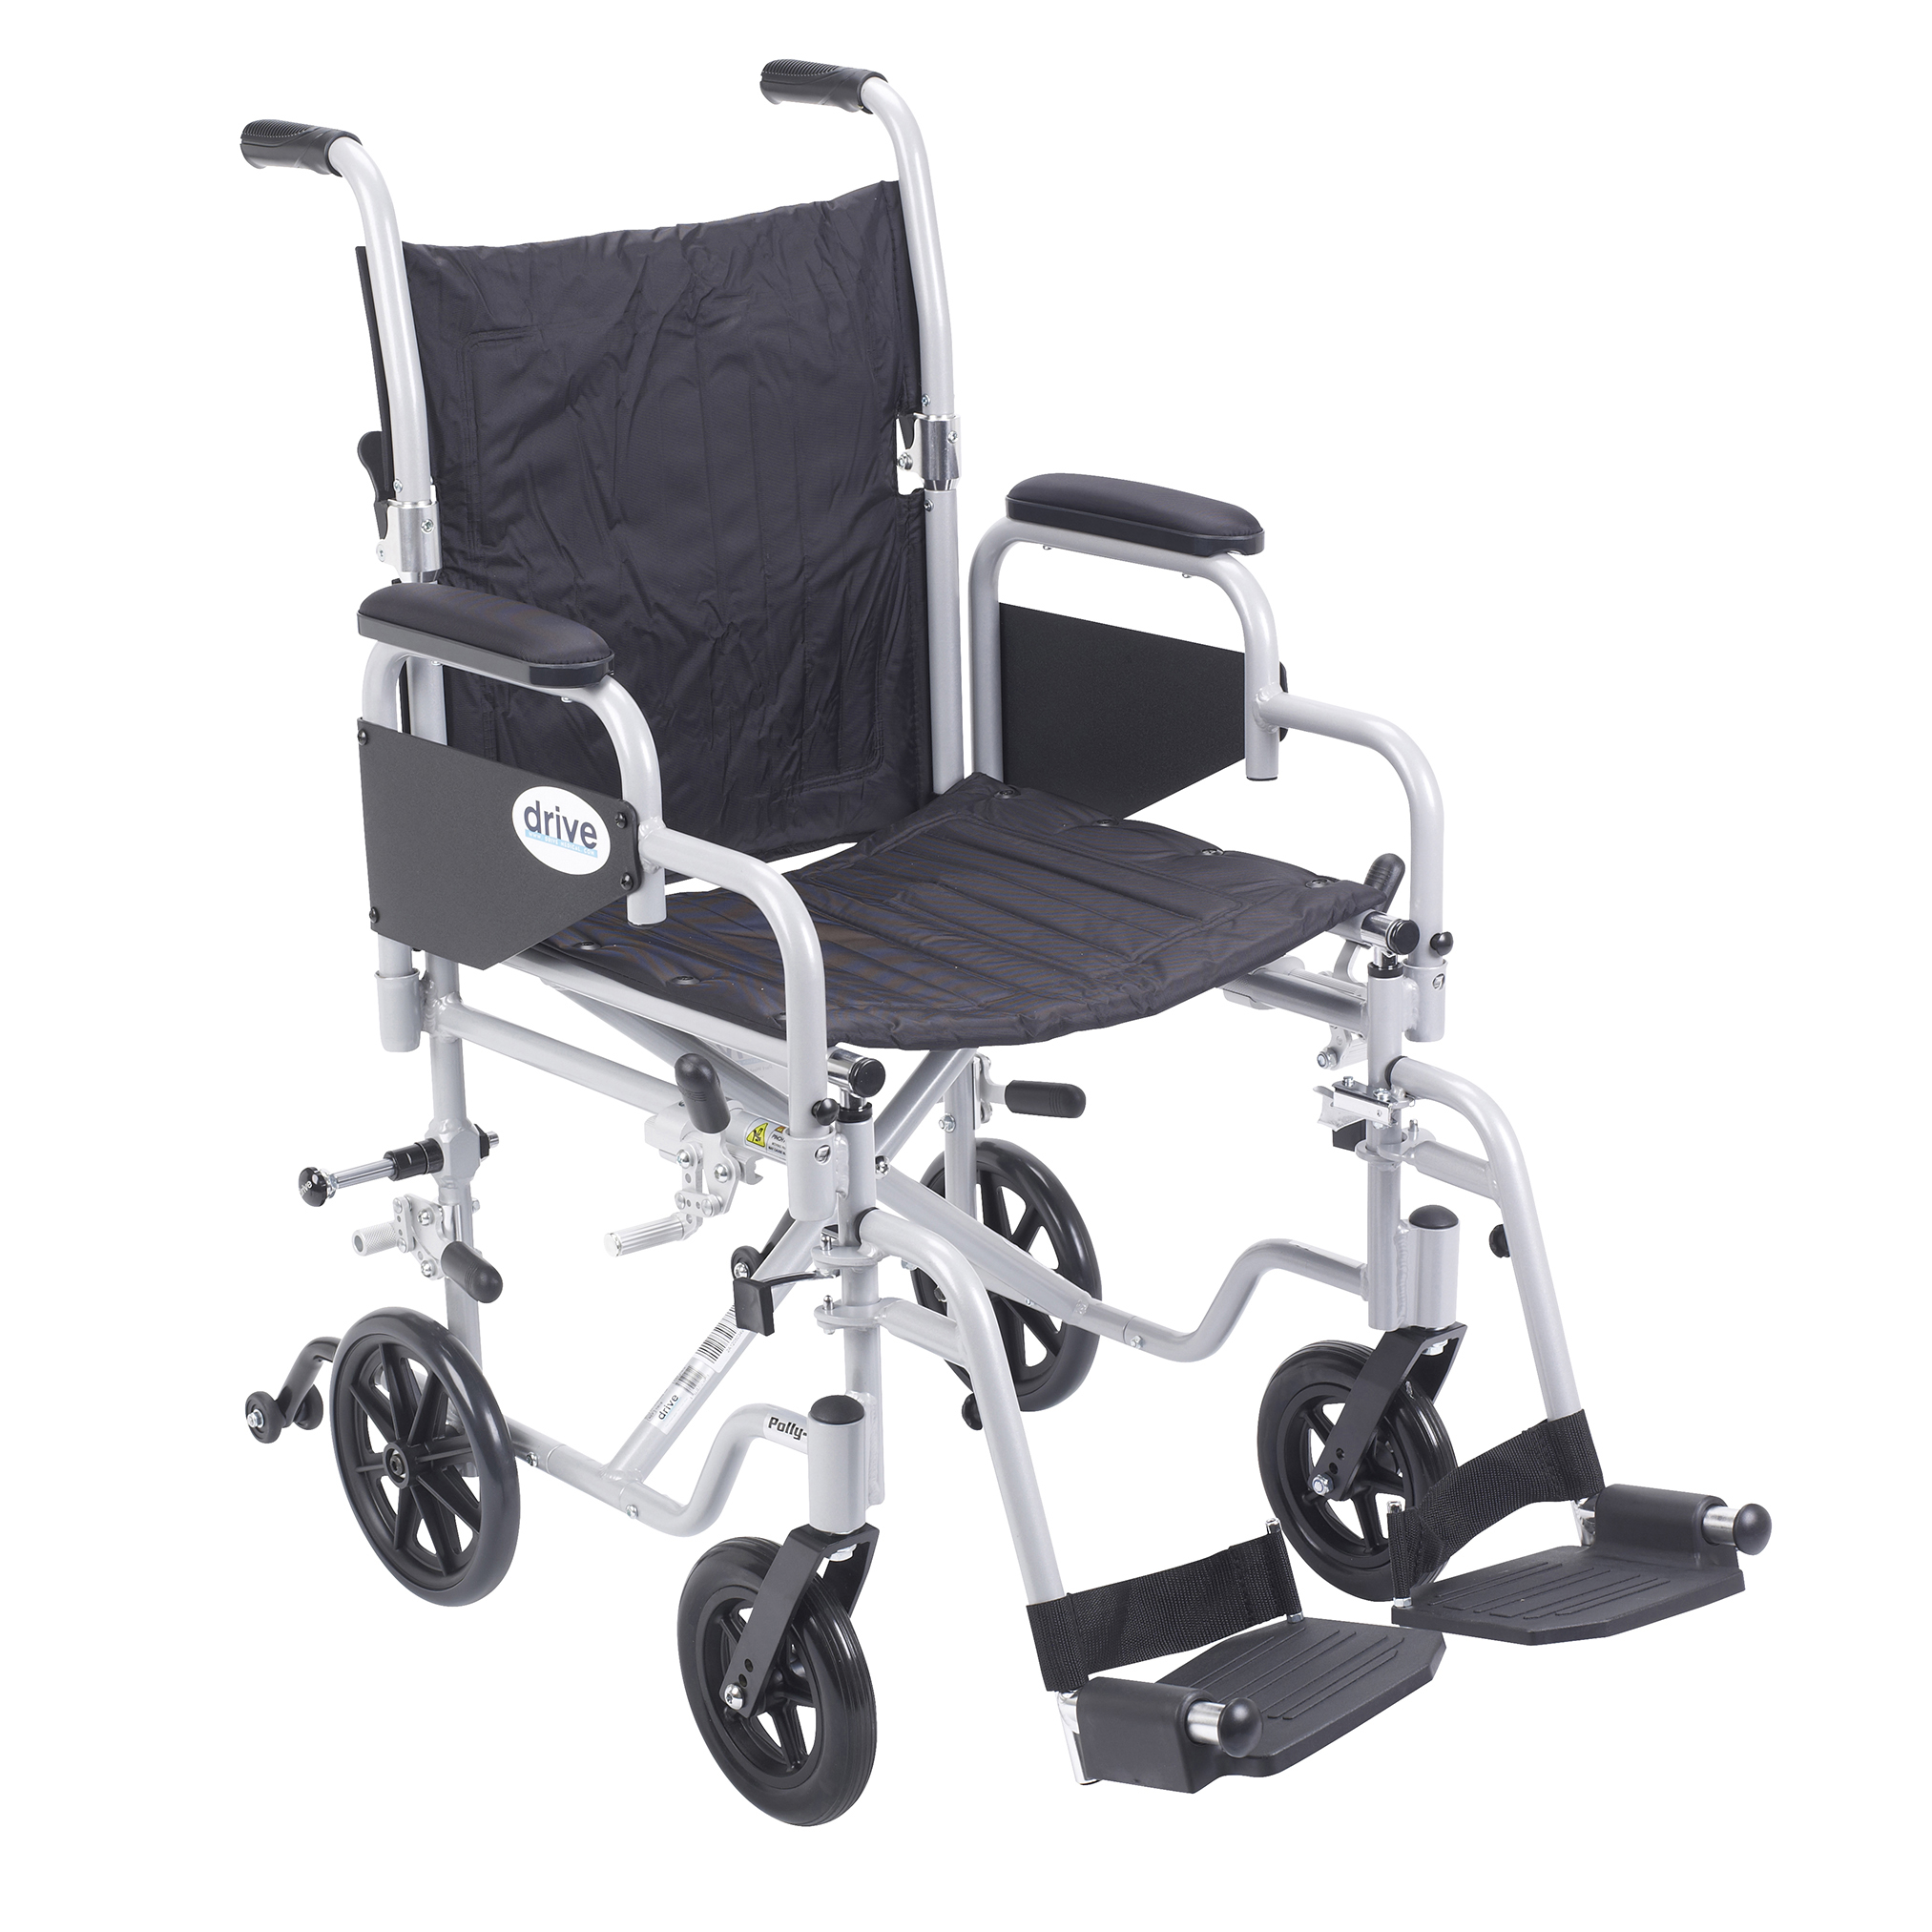 """01-TR18 Poly Fly 8"""" Rear Wheel Brakes (set Left and Right)-transportchairtr18.jpg"""